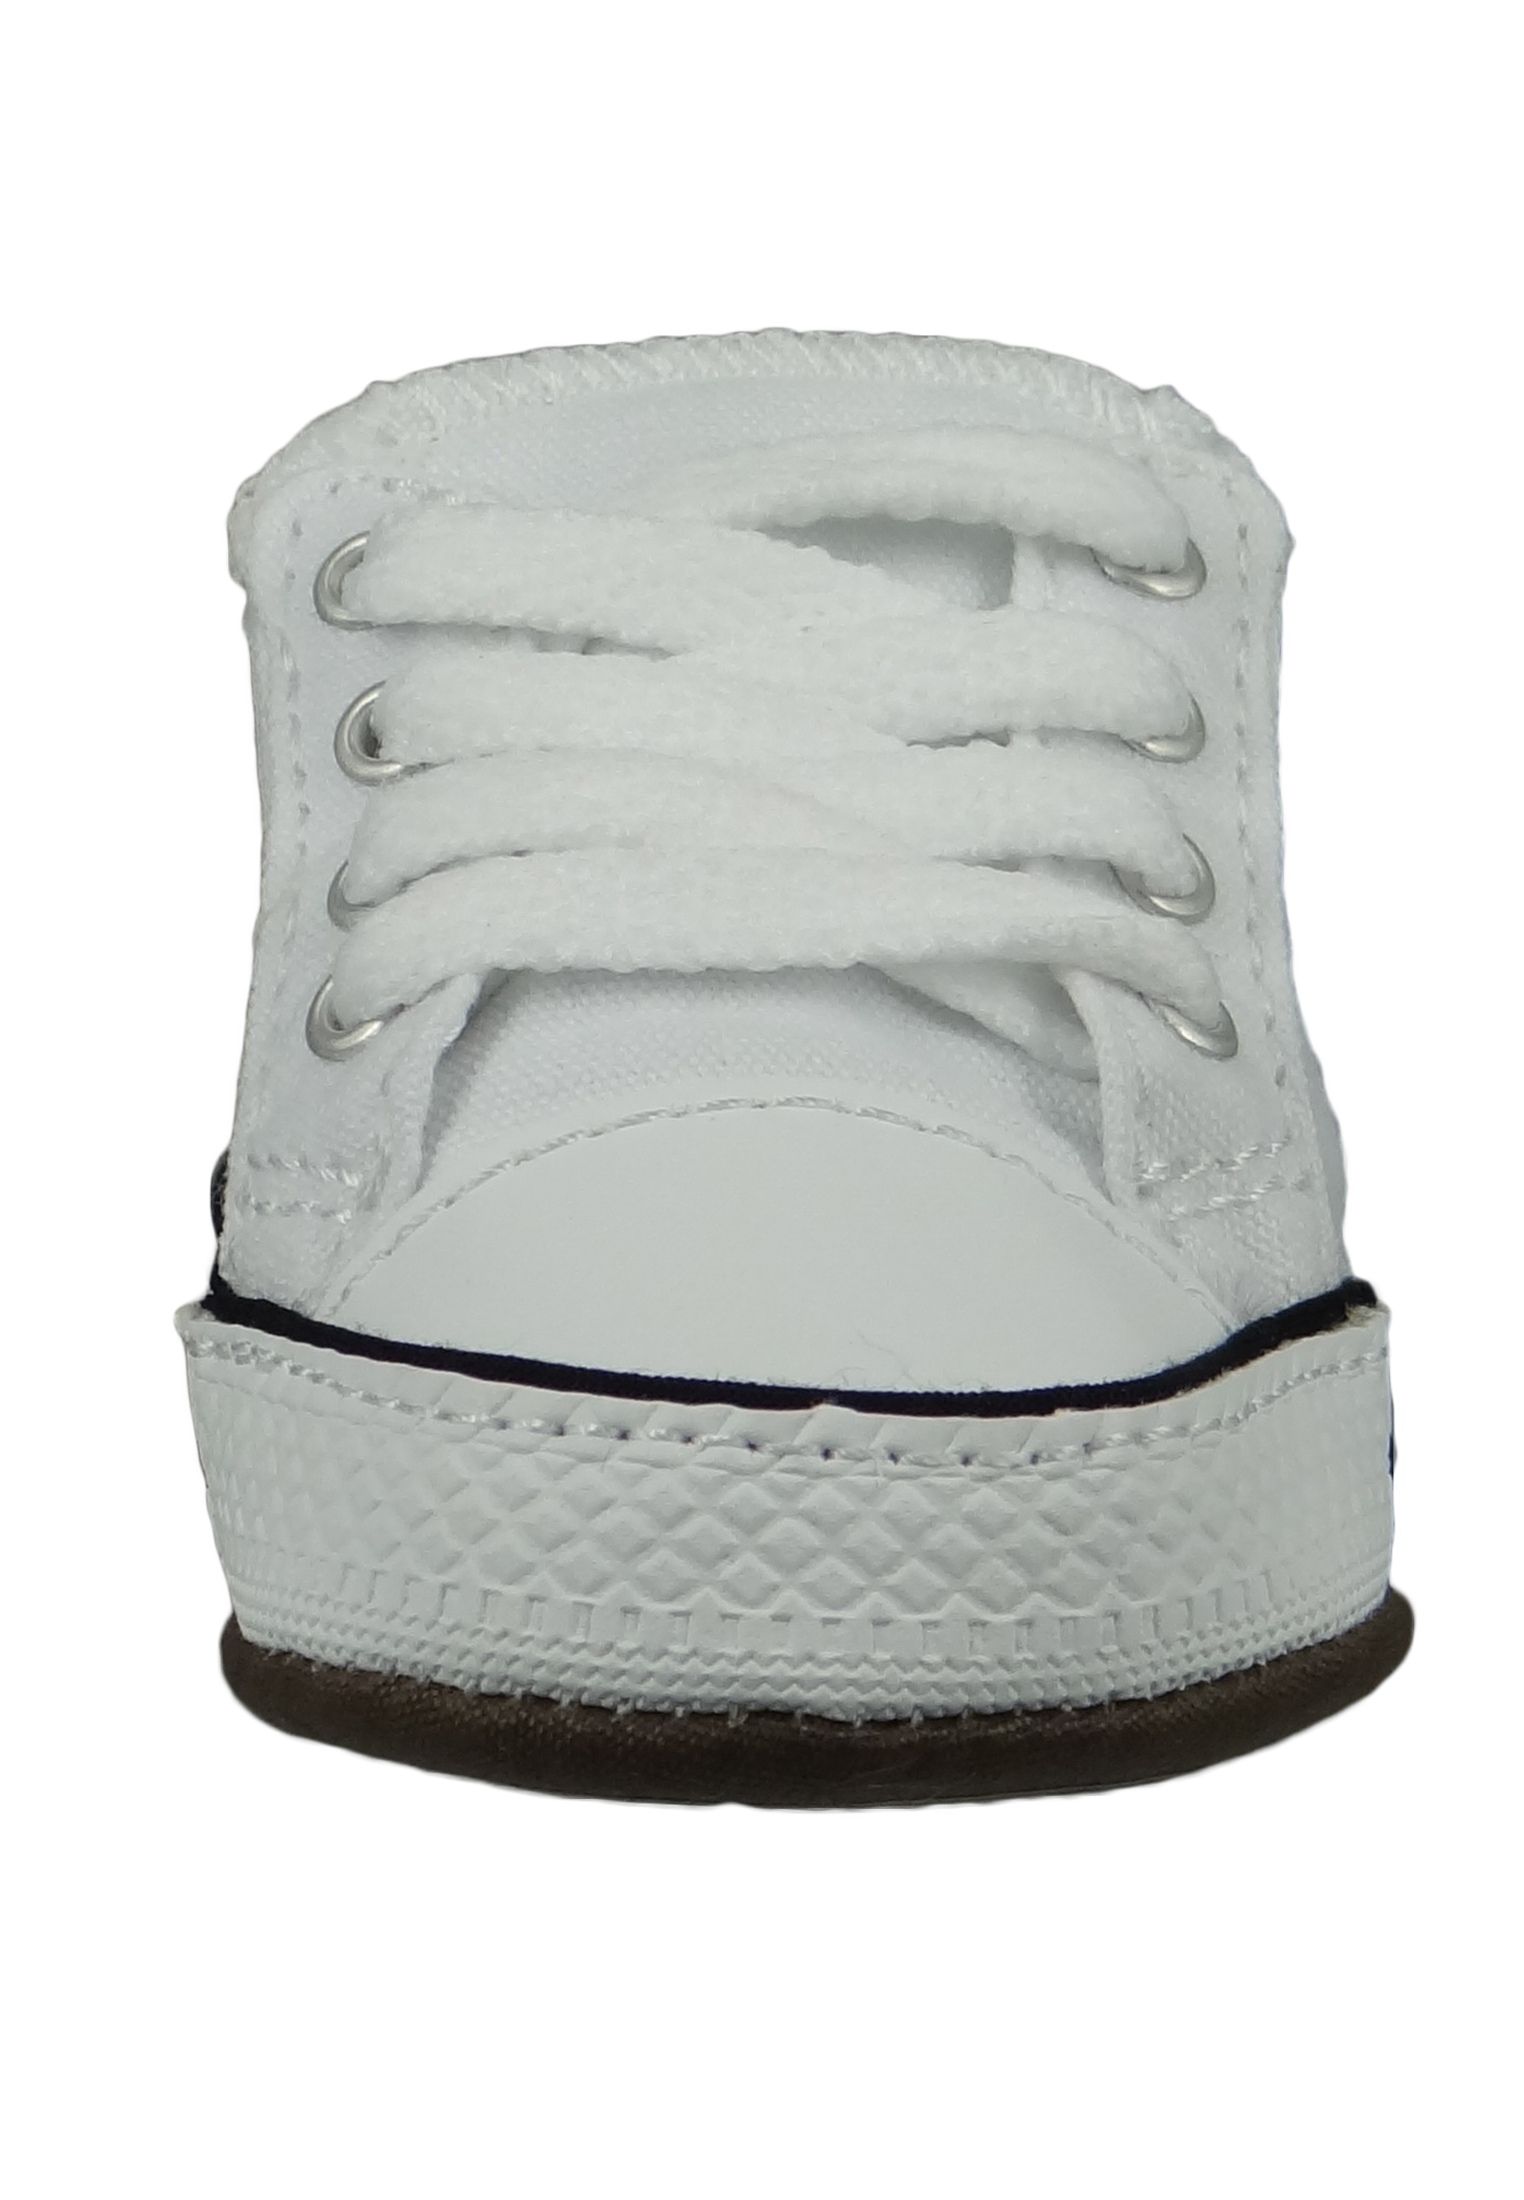 Converse Baby Chucks Weiss Chuck Taylor All Star White Natural Ivory White